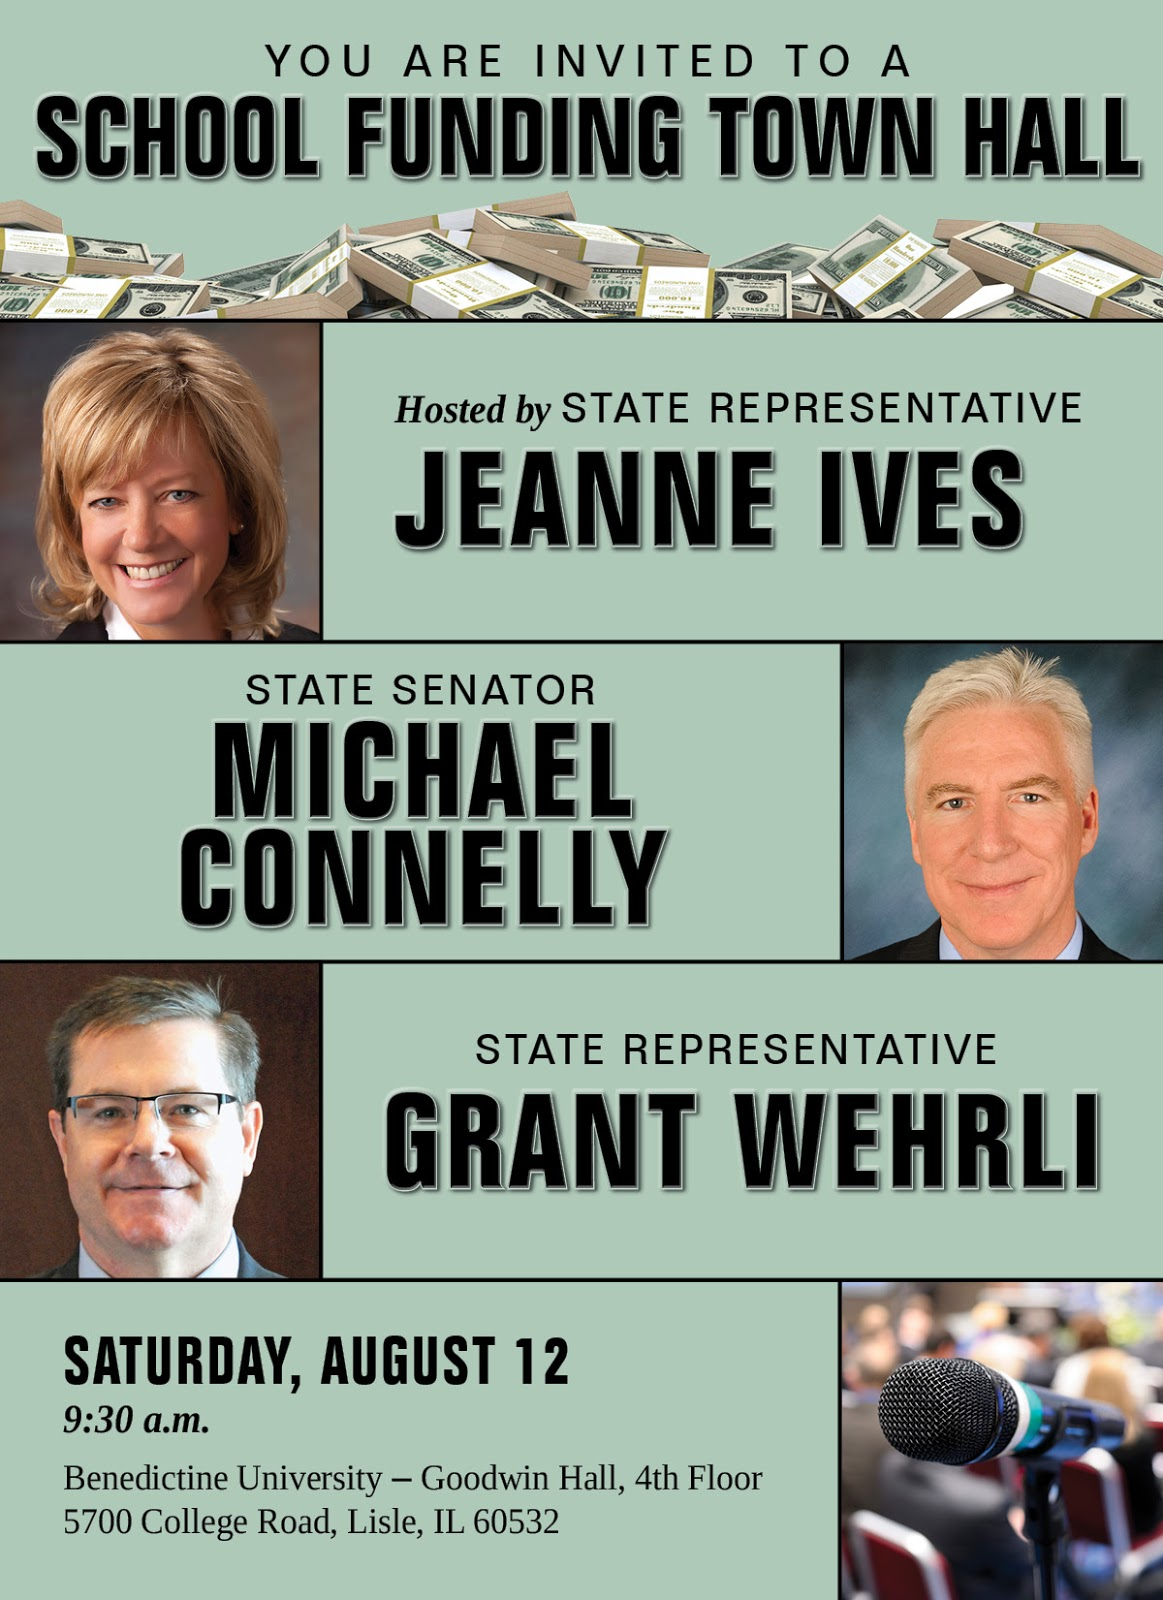 ives r wheaton and grant wehrli r naperville along with state senator michael connelly r naperville will host a town hall meeting on the status of